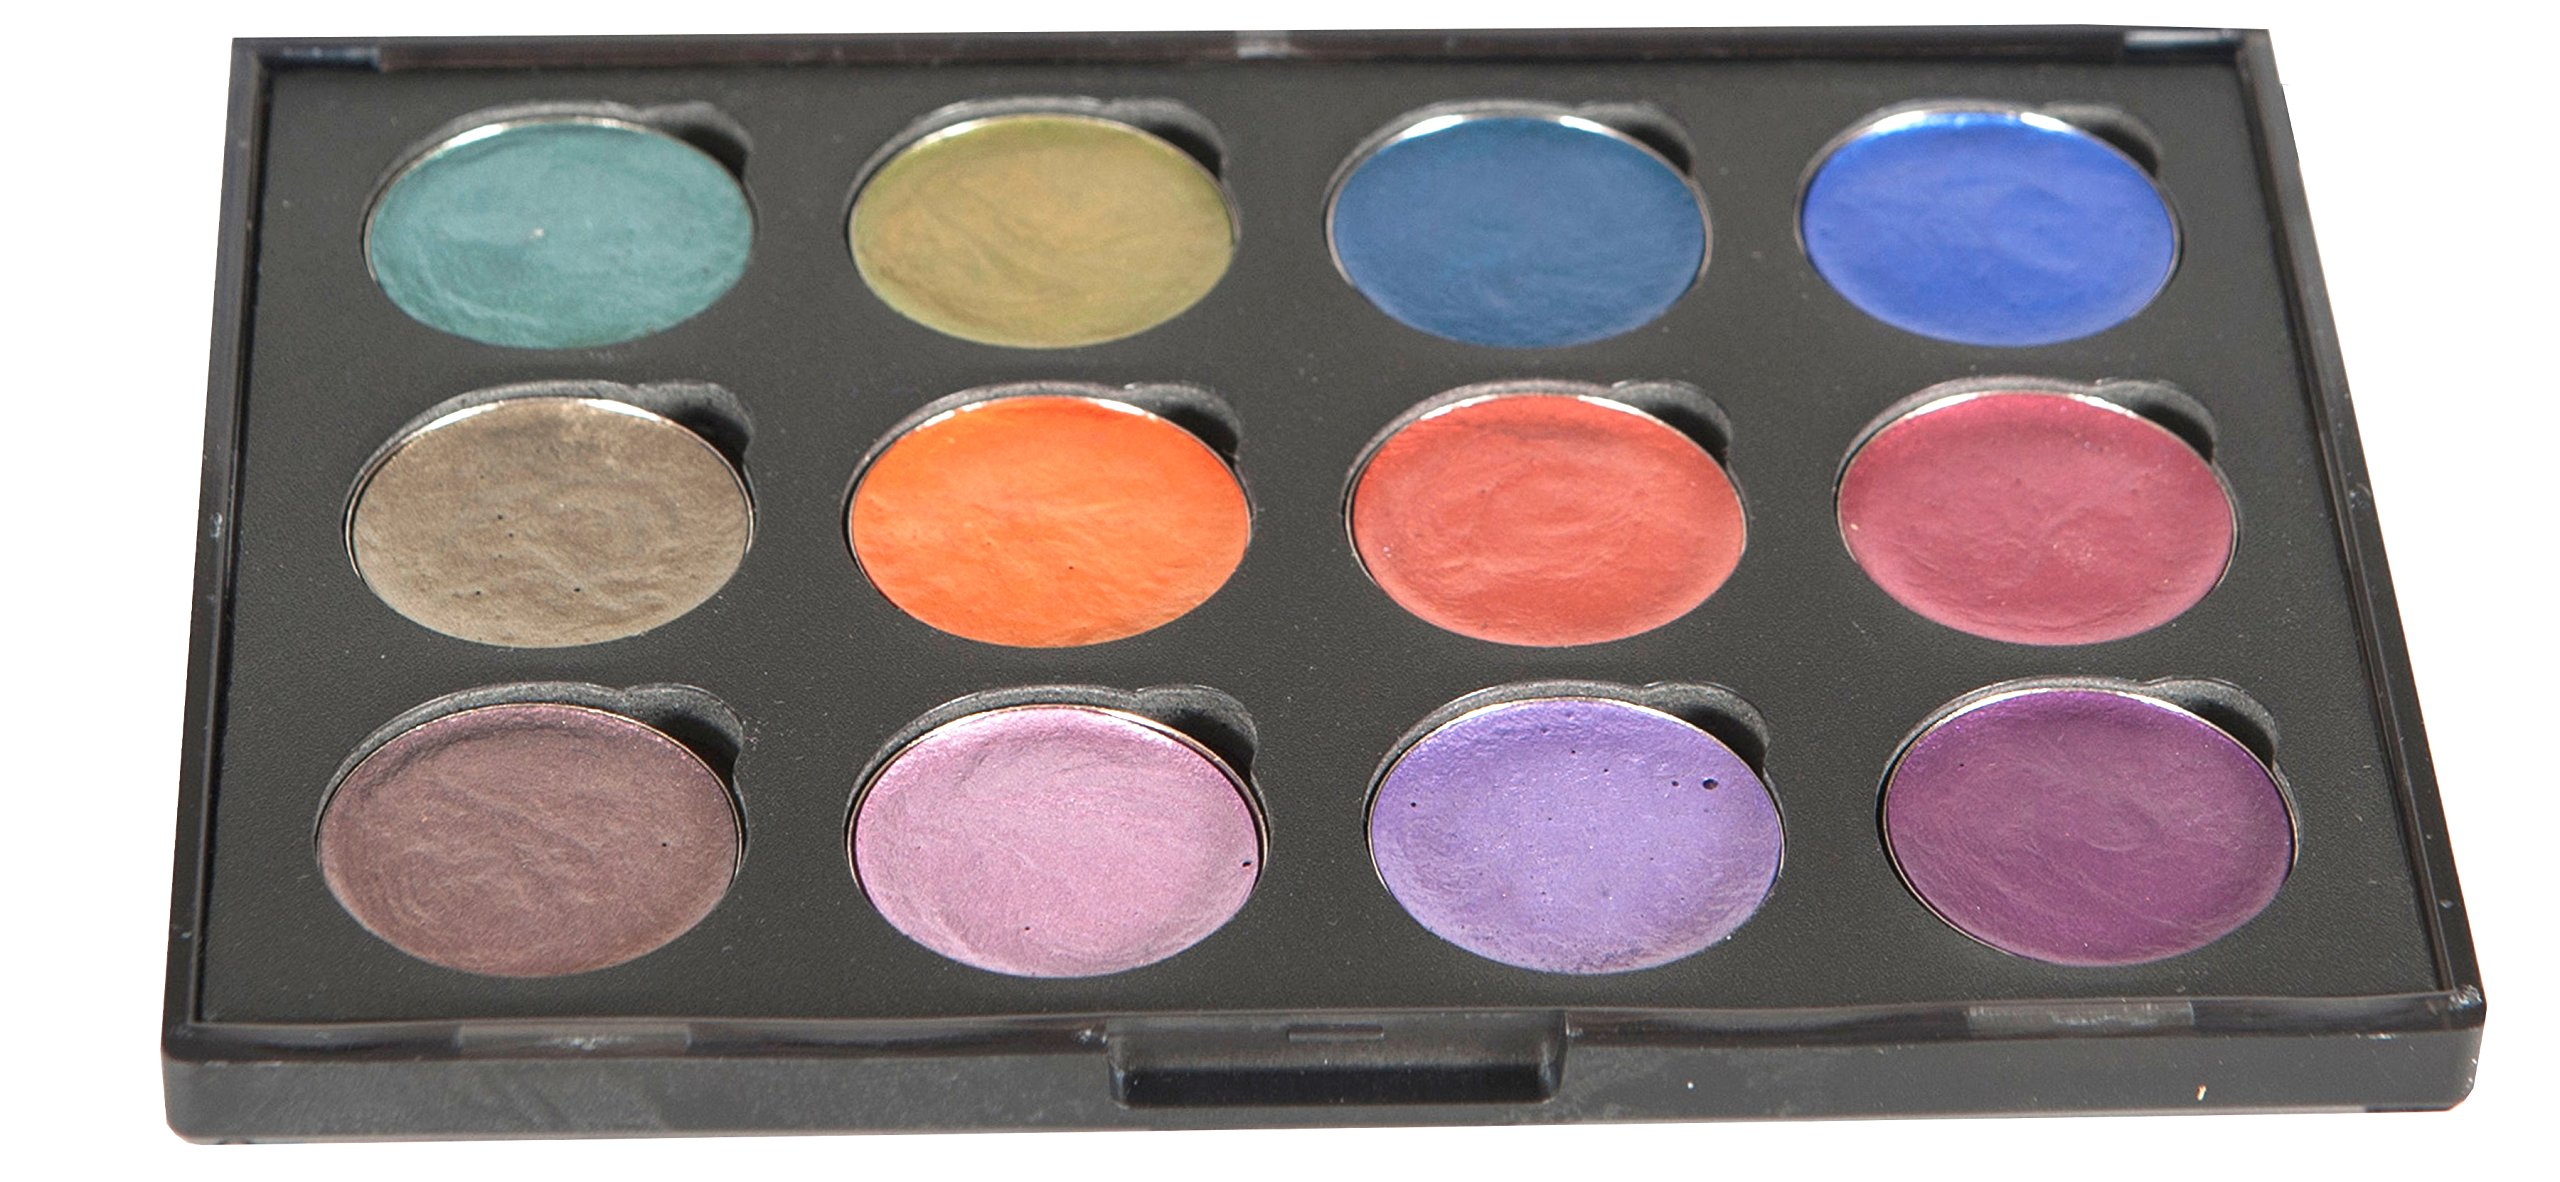 Cosmic Shimmer Iridescent Watercolour Paint Palette - Antique Shades by Ecstasy Crafts